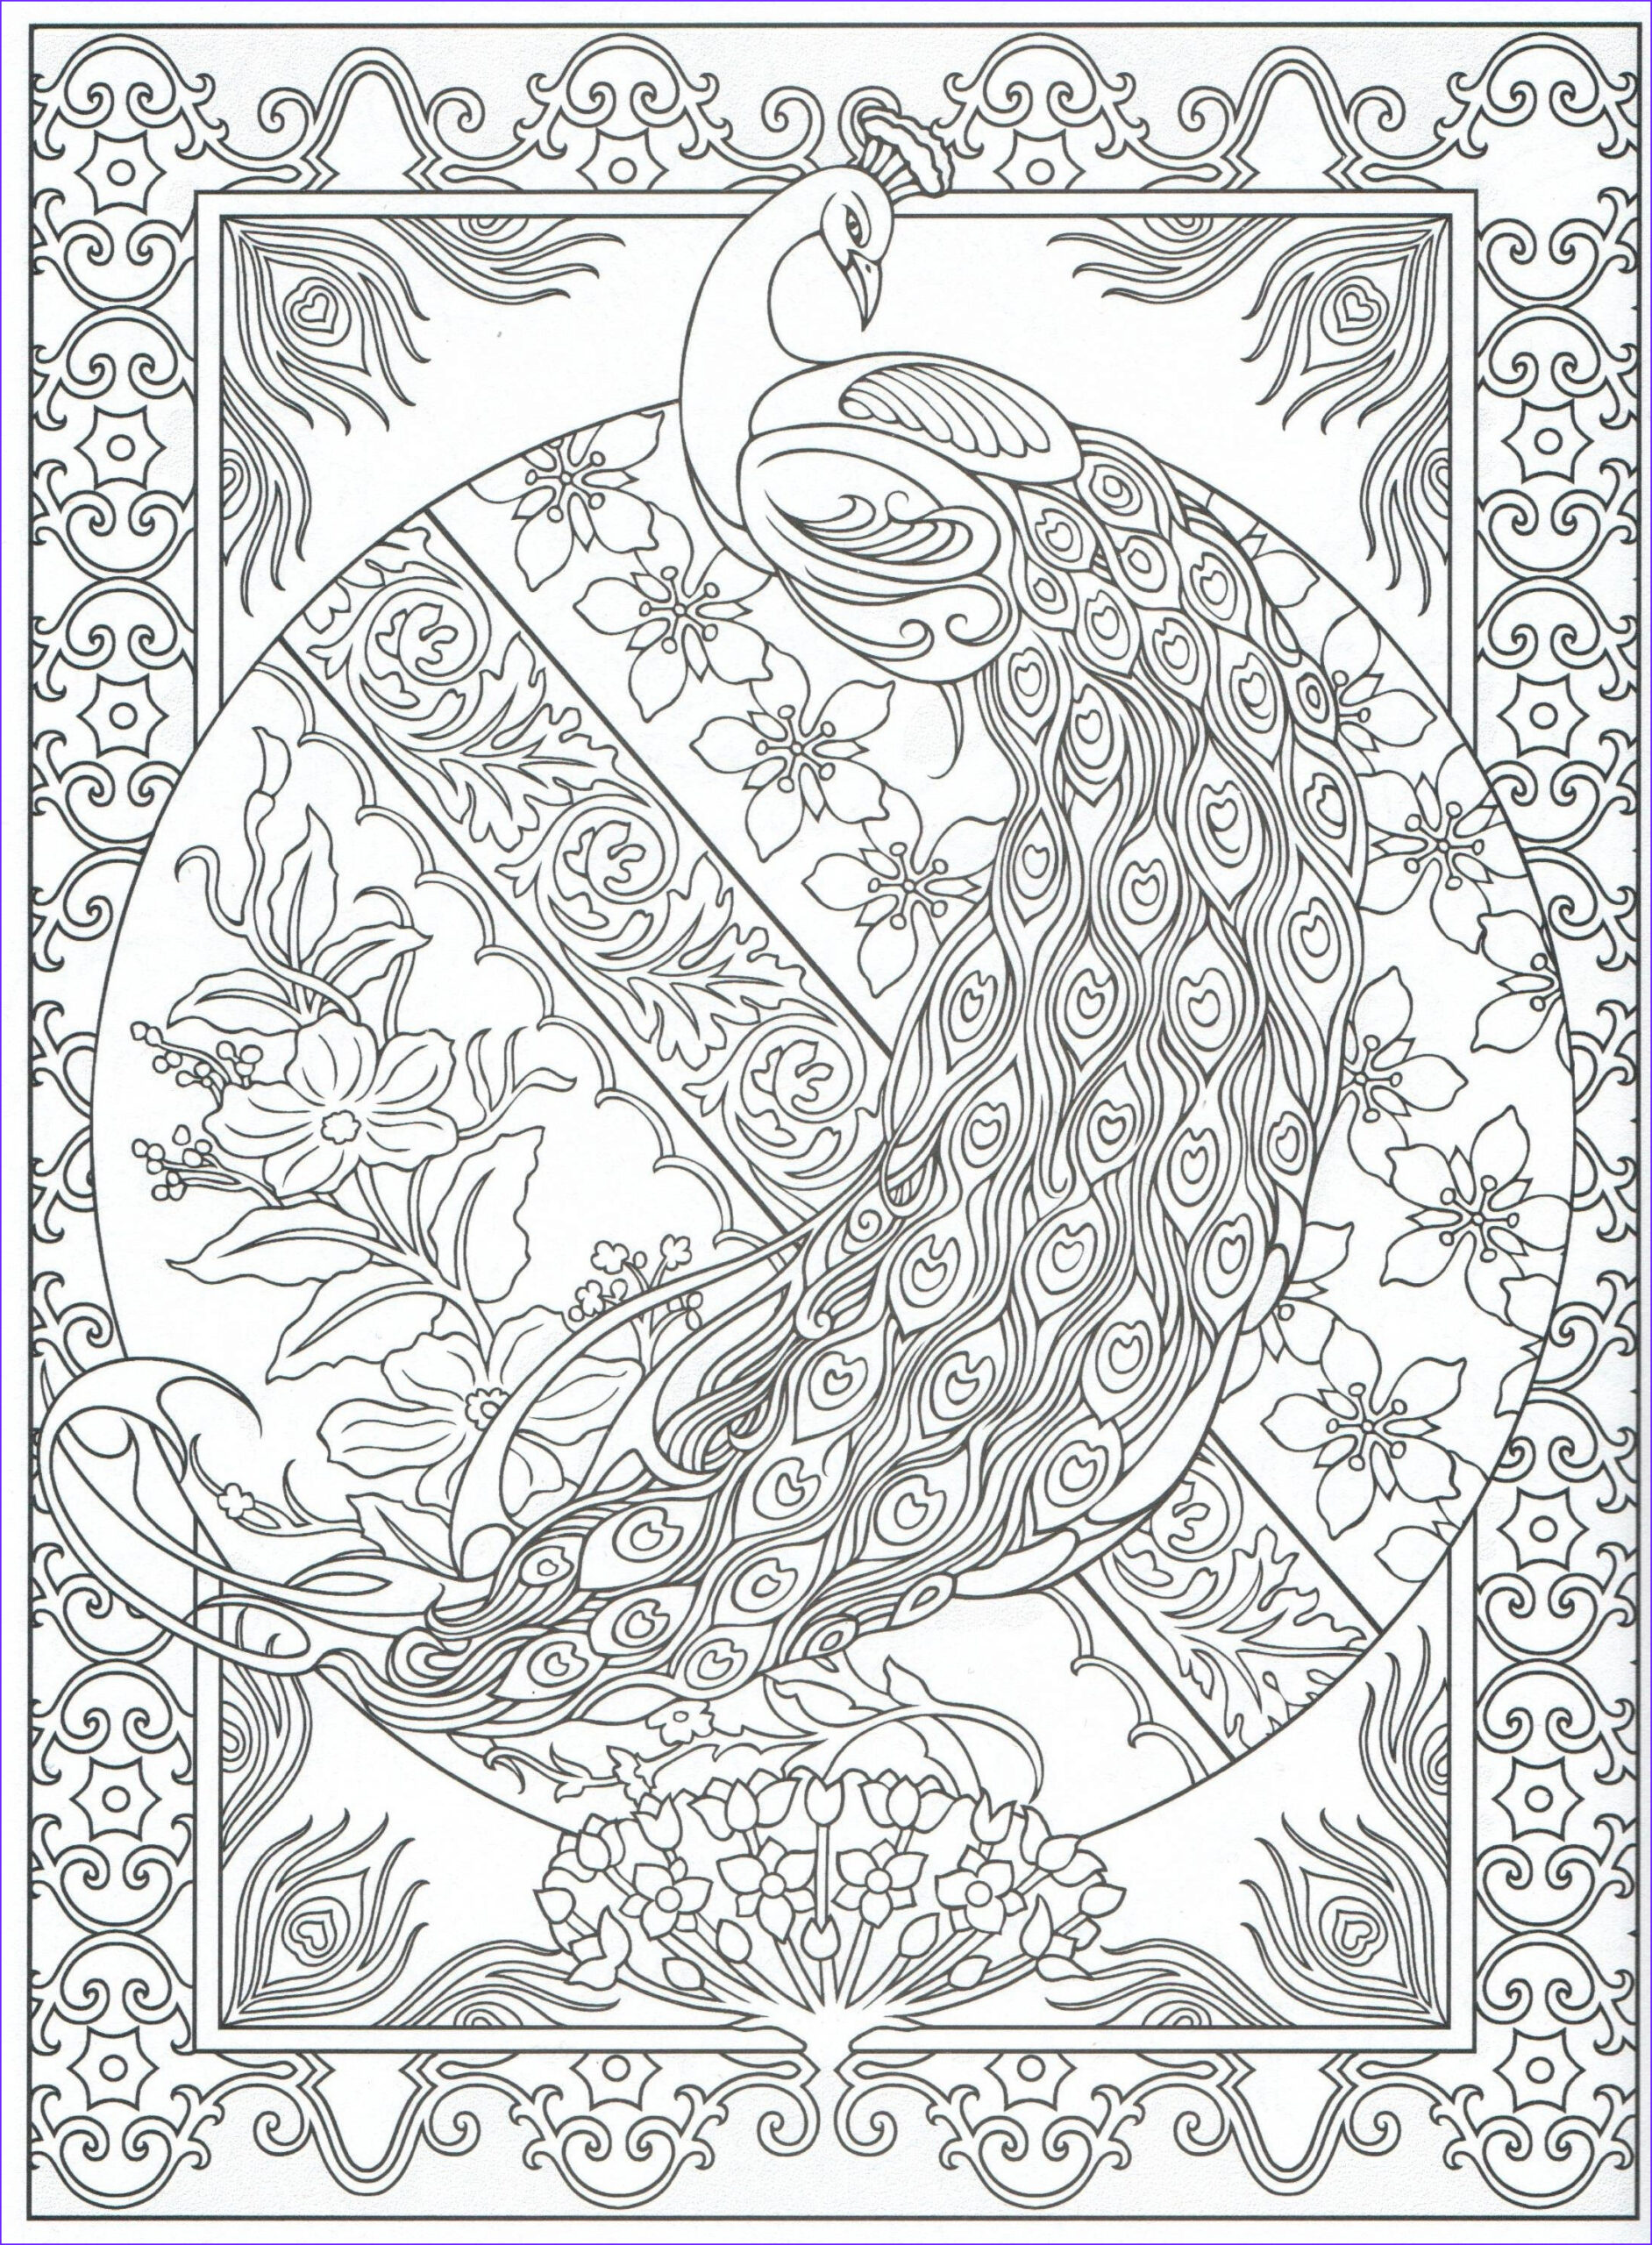 Peacock Coloring Book Awesome Images Peacock Coloring Page for Adults 2 31